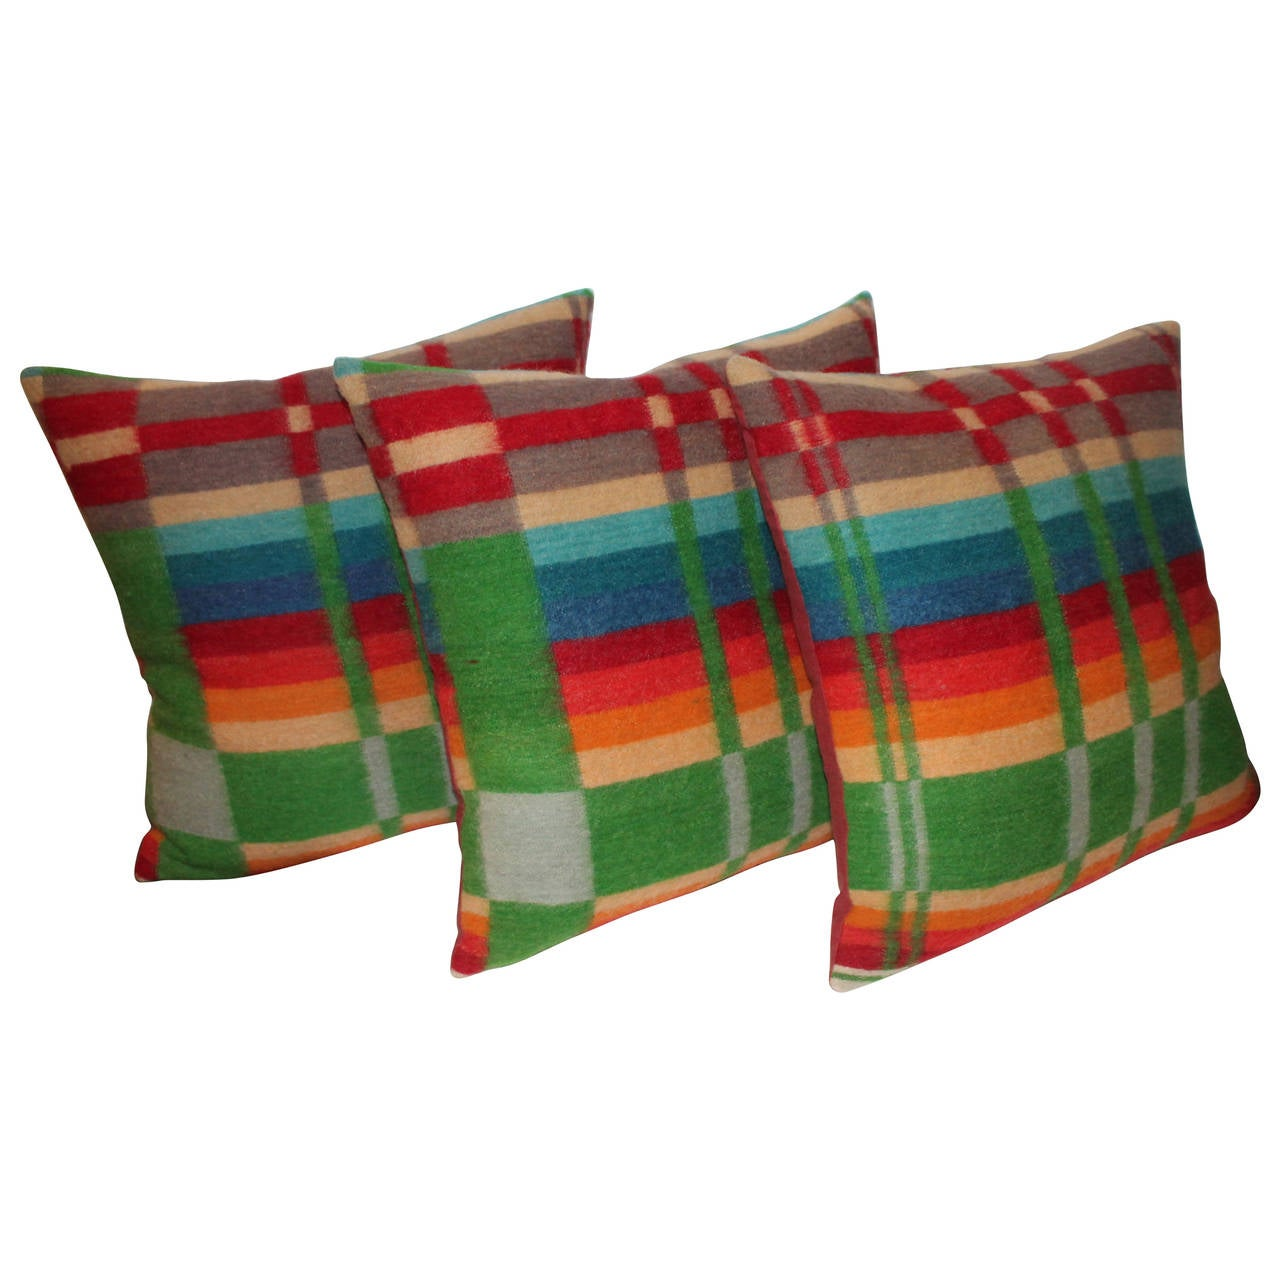 Pair of 19th Century Colorful Wool Horse Blanket Pillows